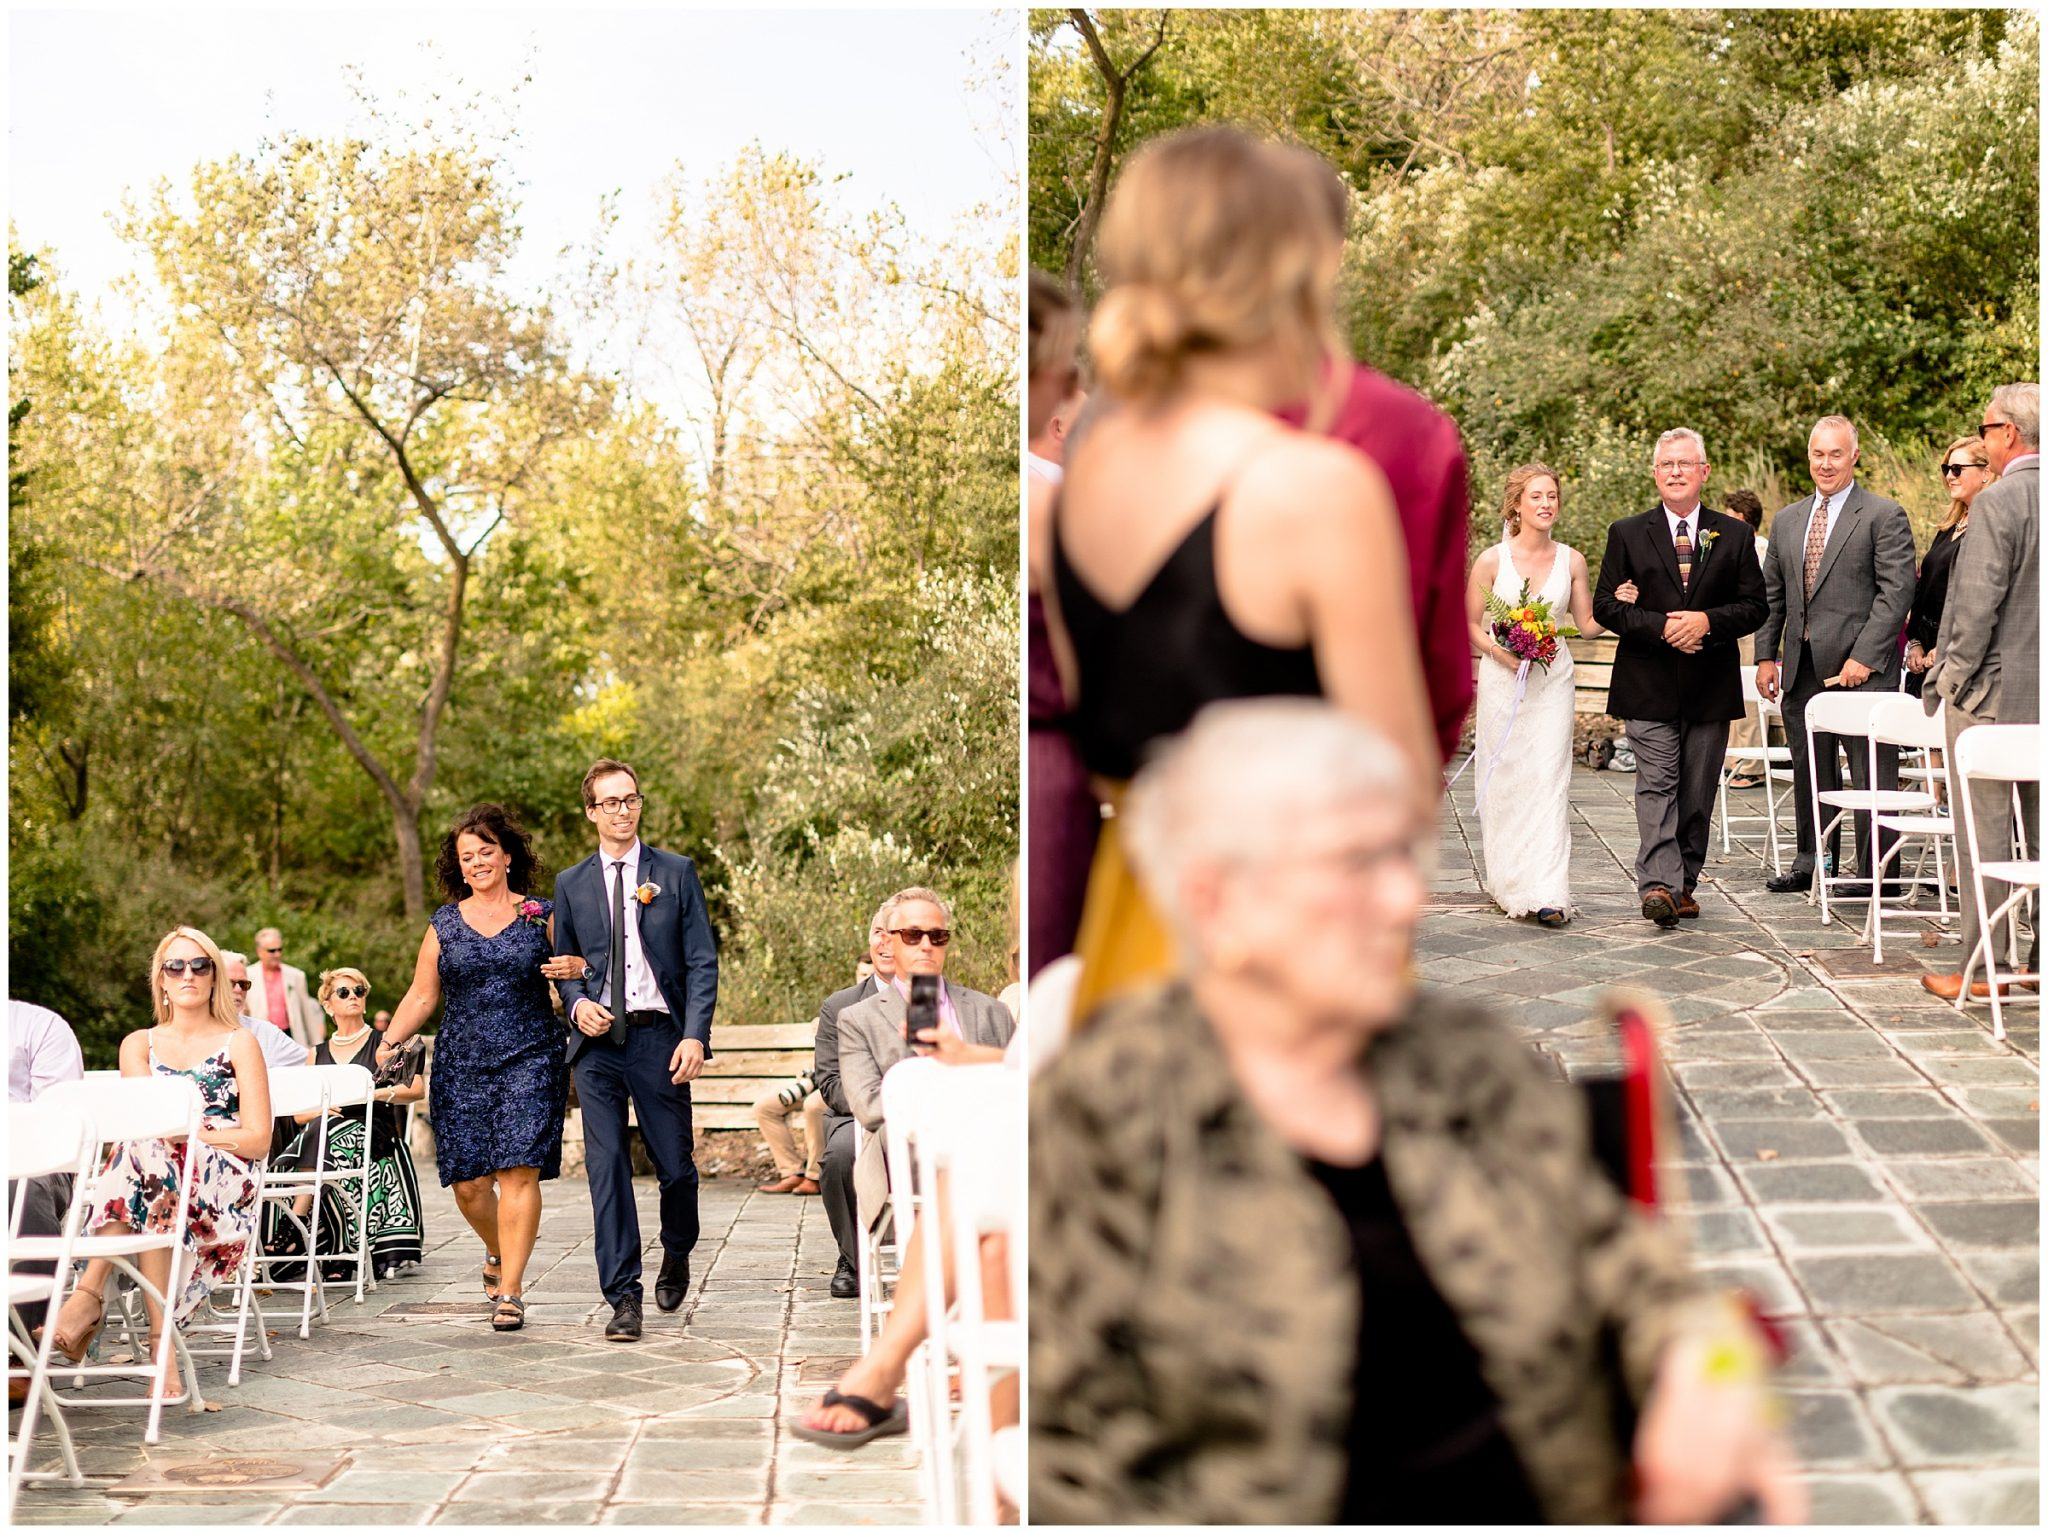 Wildlife Prairie Park Wedding Peoria Illinois_0137